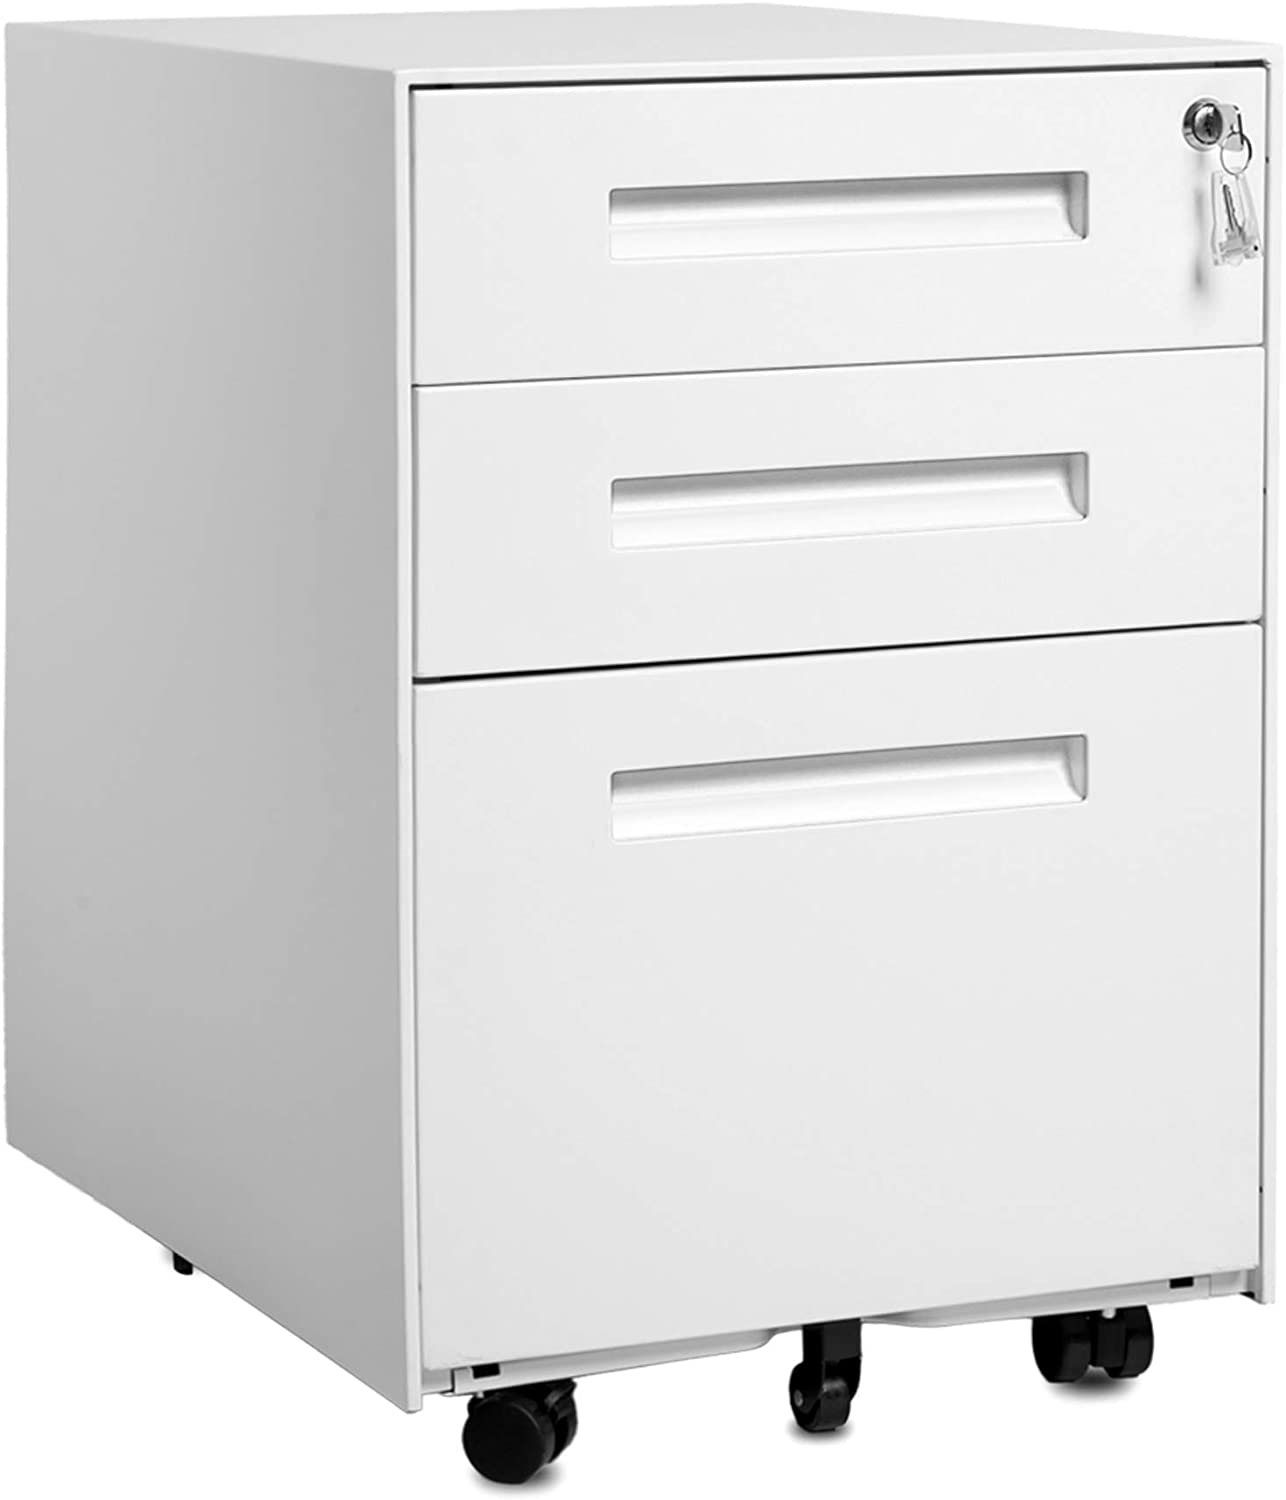 Amazon.com: Steel File Cabinet with 36 Drawers and Keys Lock Mobile